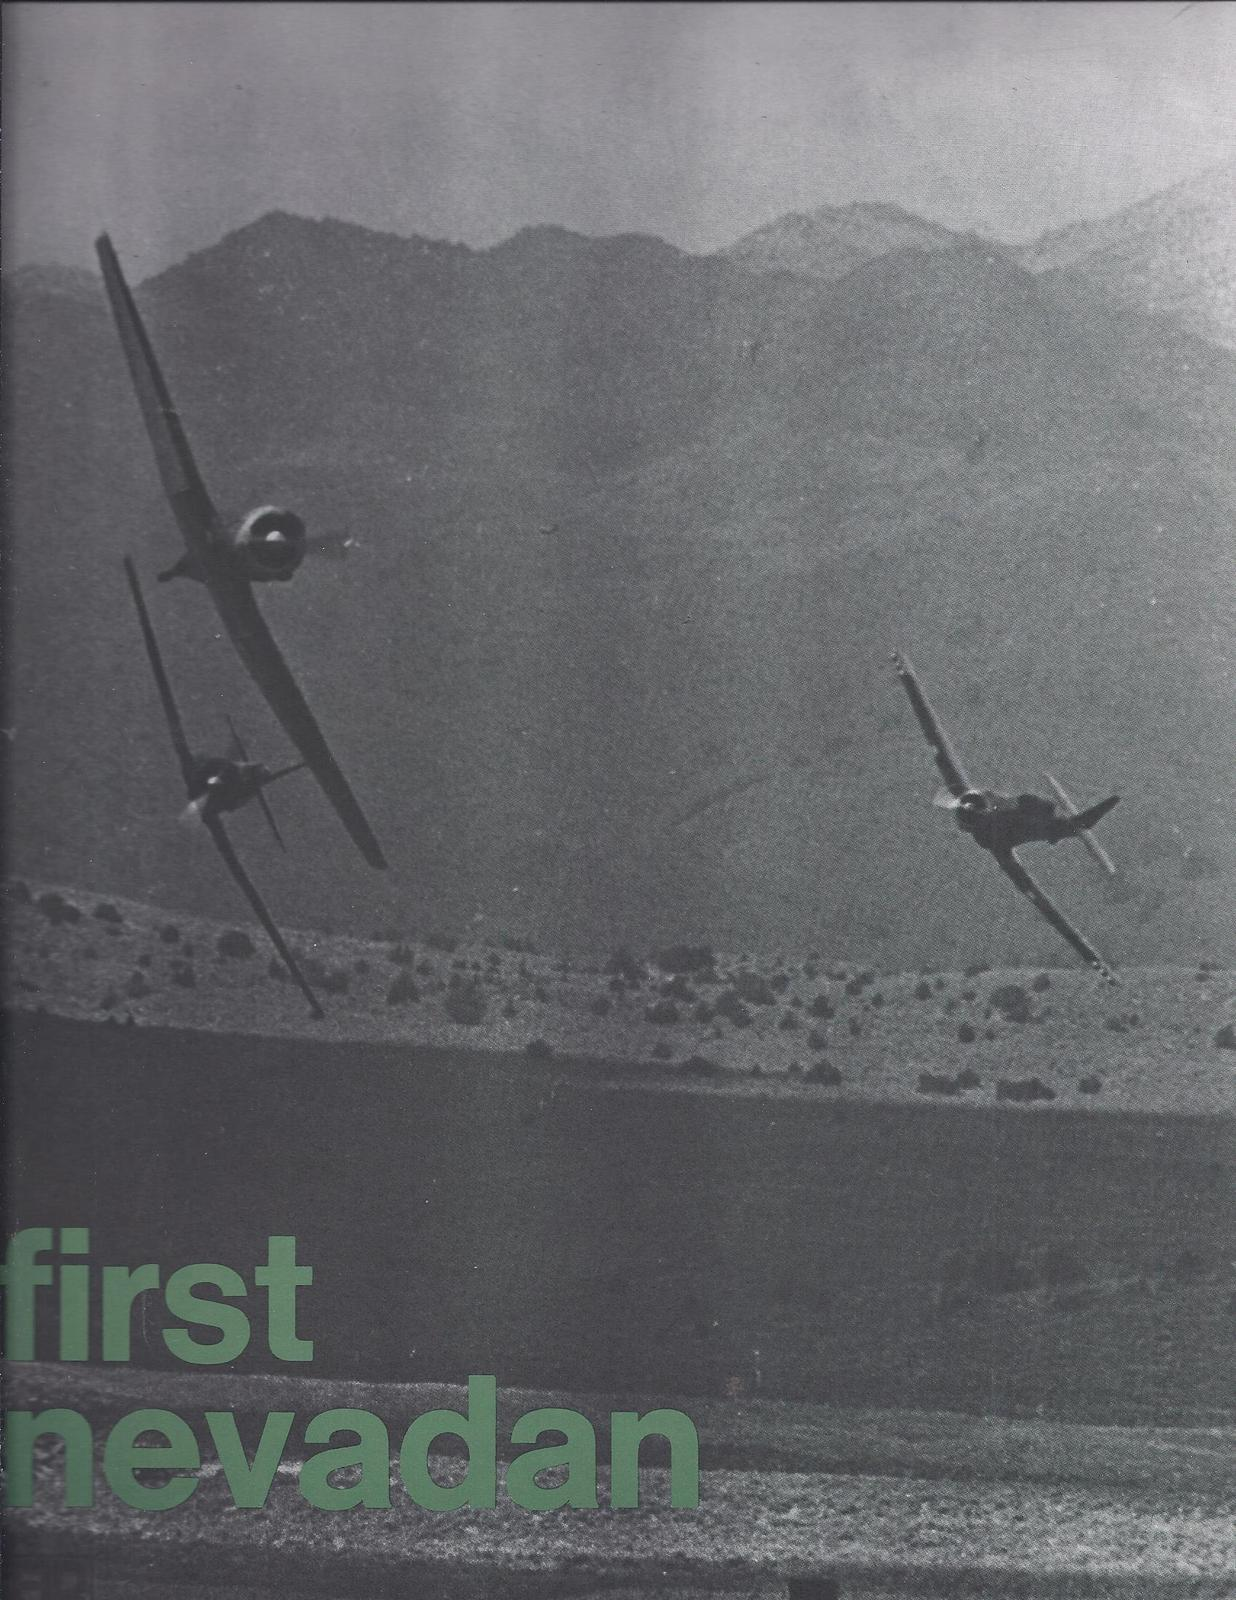 Primary image for The First Nevadan Vol 24 No. 4 September 1972 Issue Magazine